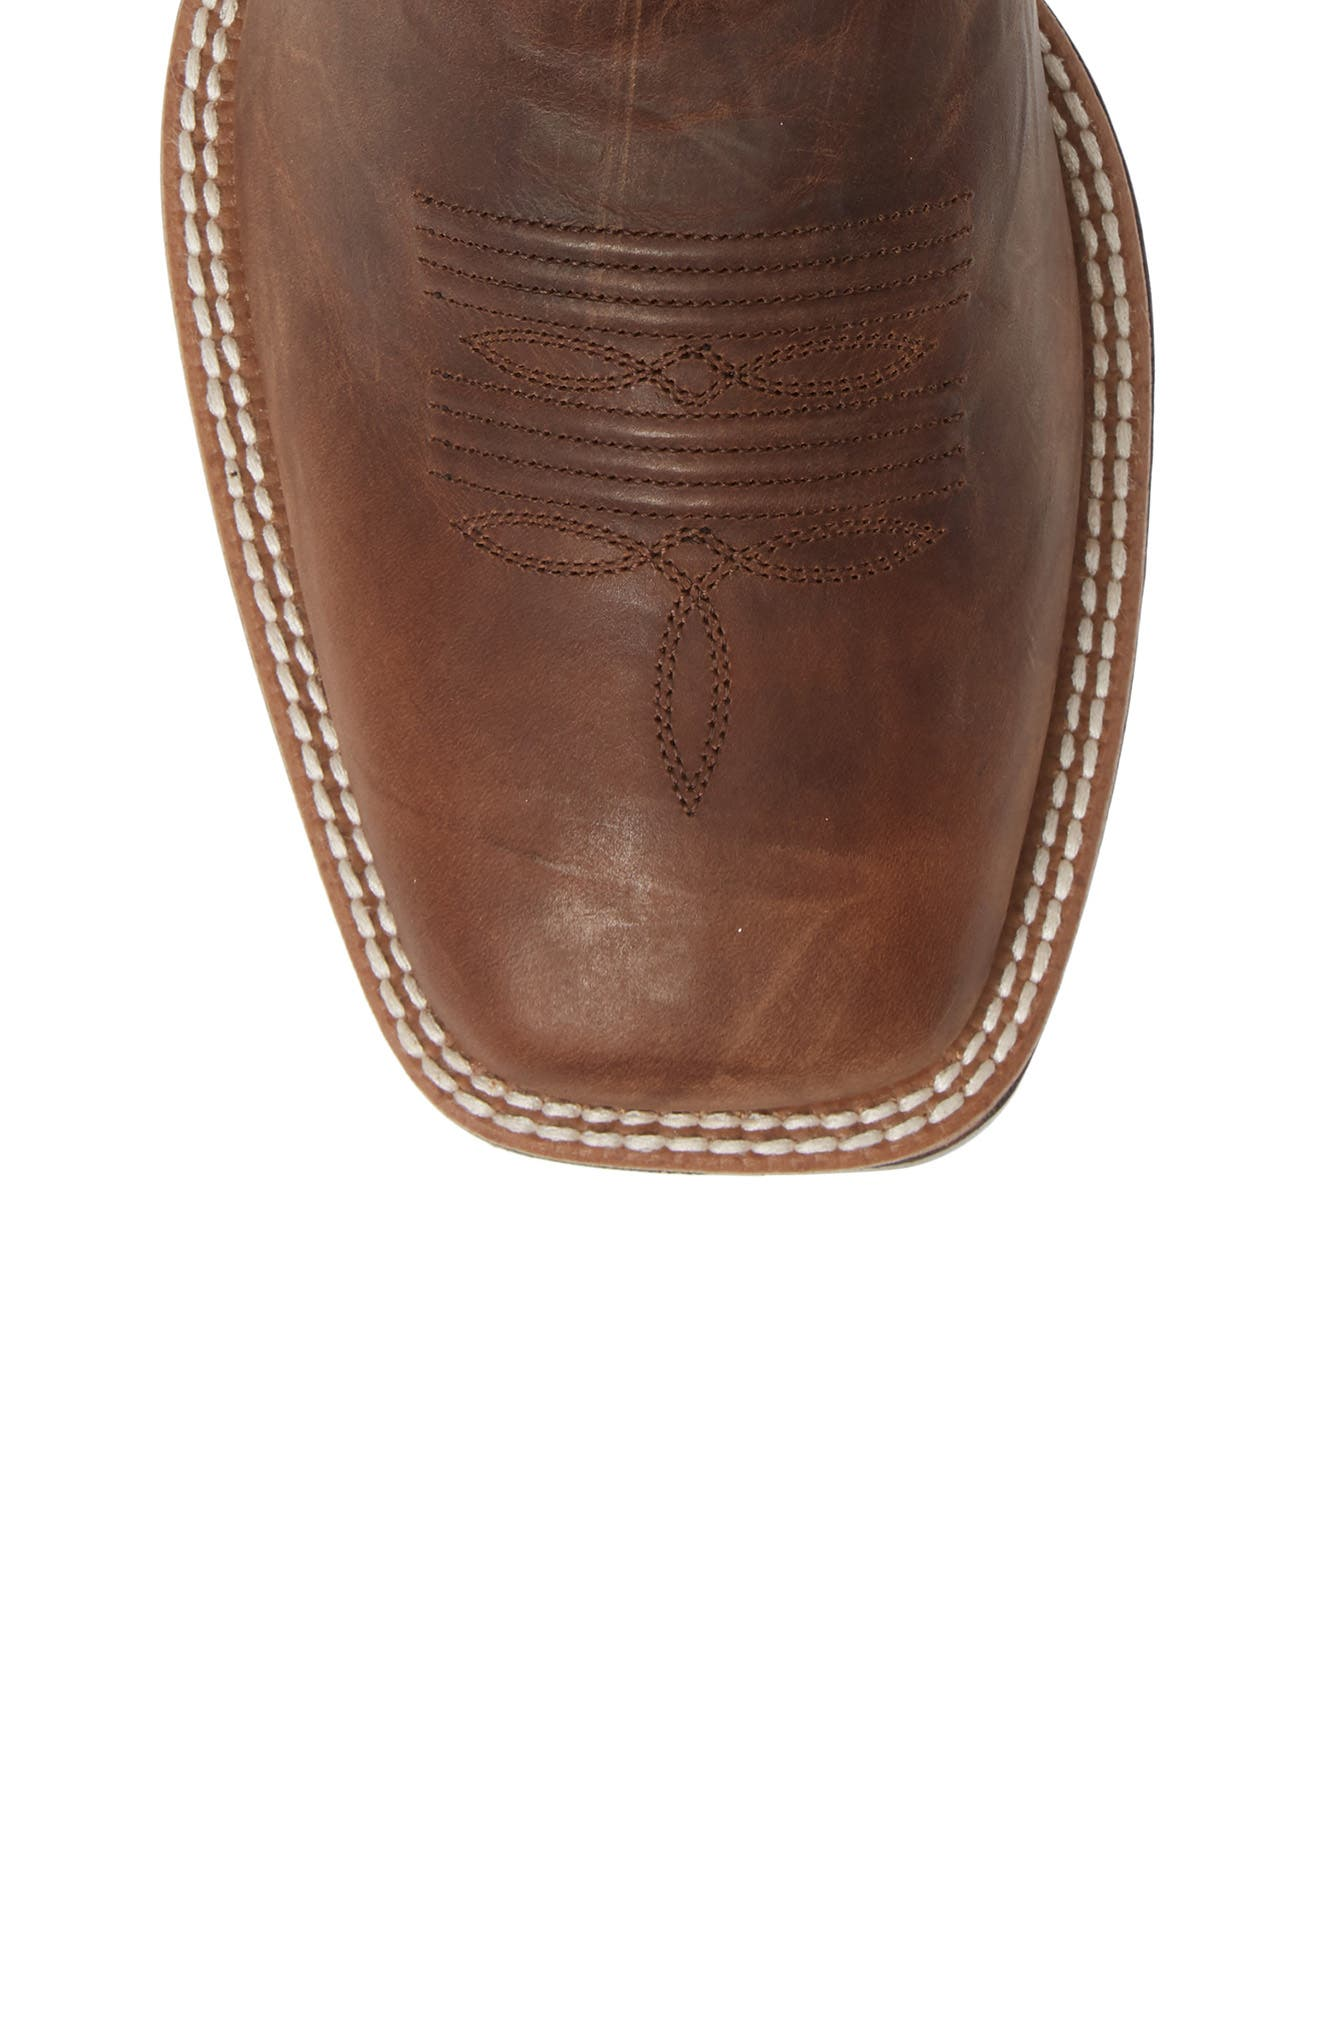 Plano Cowboy Boot,                             Alternate thumbnail 5, color,                             TANNIN/ TACK ROM LEATHER